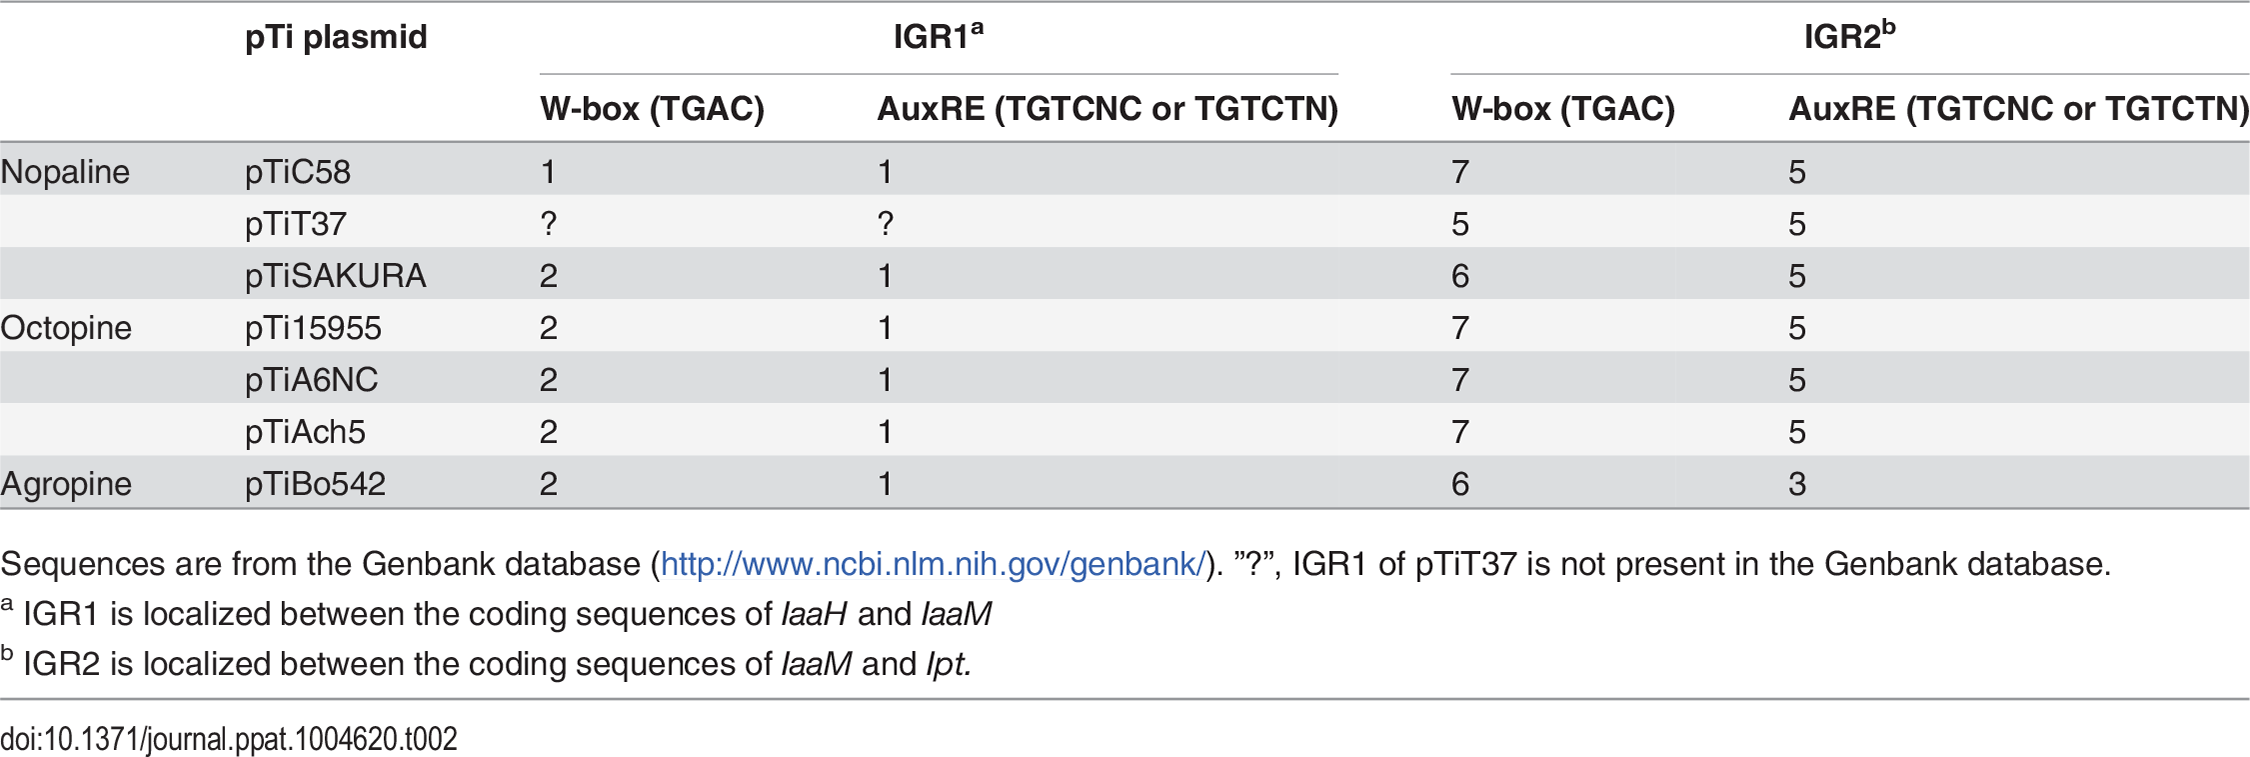 Number of WRKY-boxes (W-boxes) and auxin response elements (AuxREs) within the intergenic regions (IGRs) of the tumor inducing (Ti) plasmids from different <i>A. tumefaciens</i> strains.